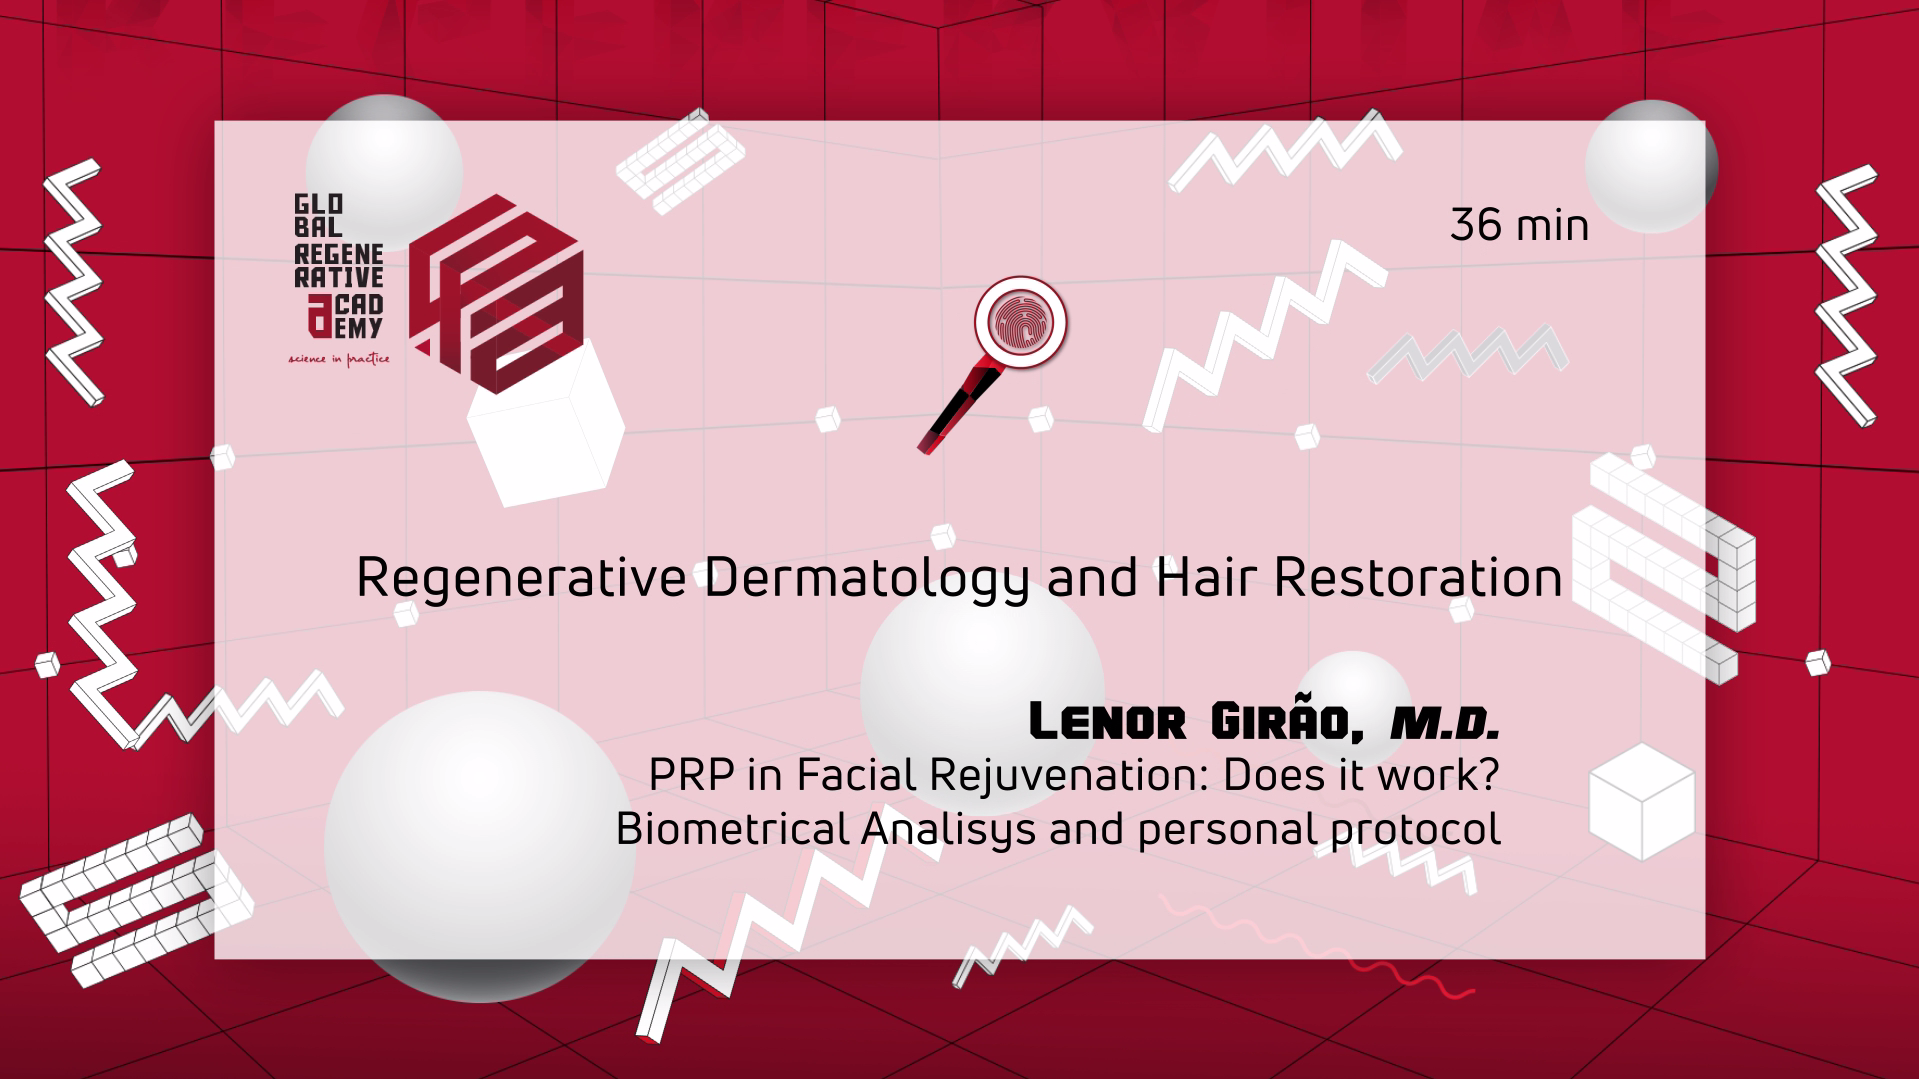 A powerpoint slide about regenerative dermatology and Hair Restoration by Lenor Girao, M.D.